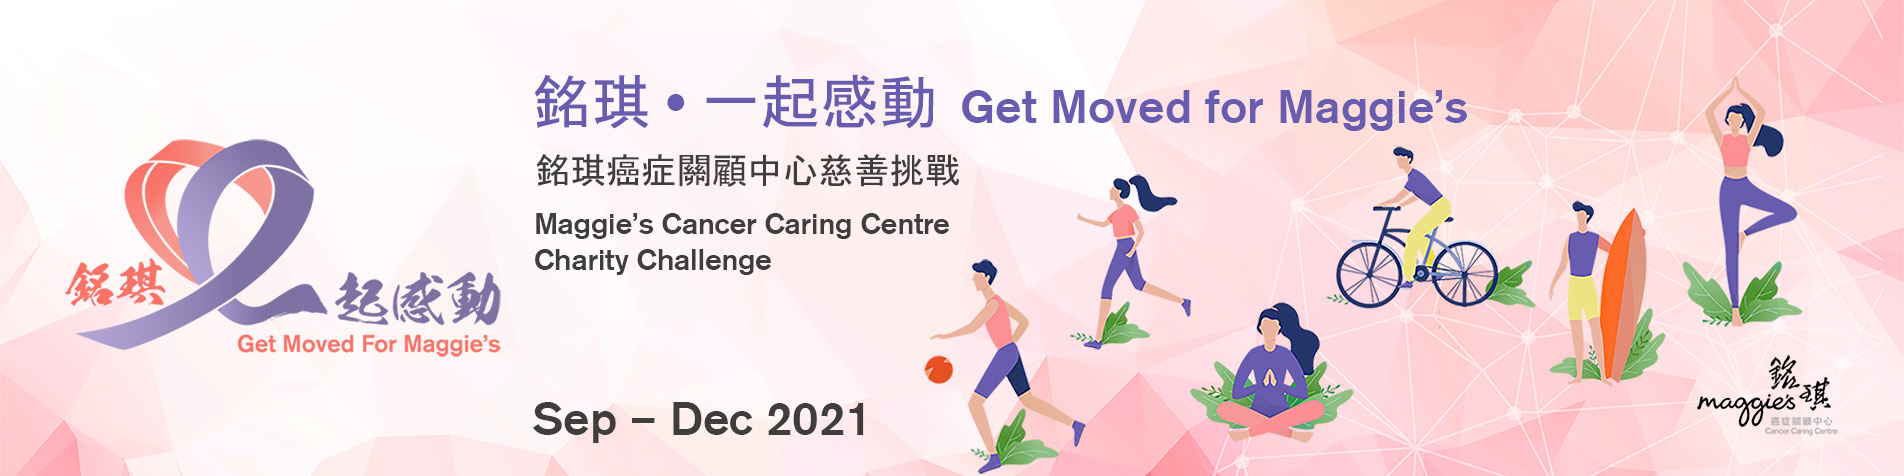 Maggie's Cancer Caring Centre Charity Challenge